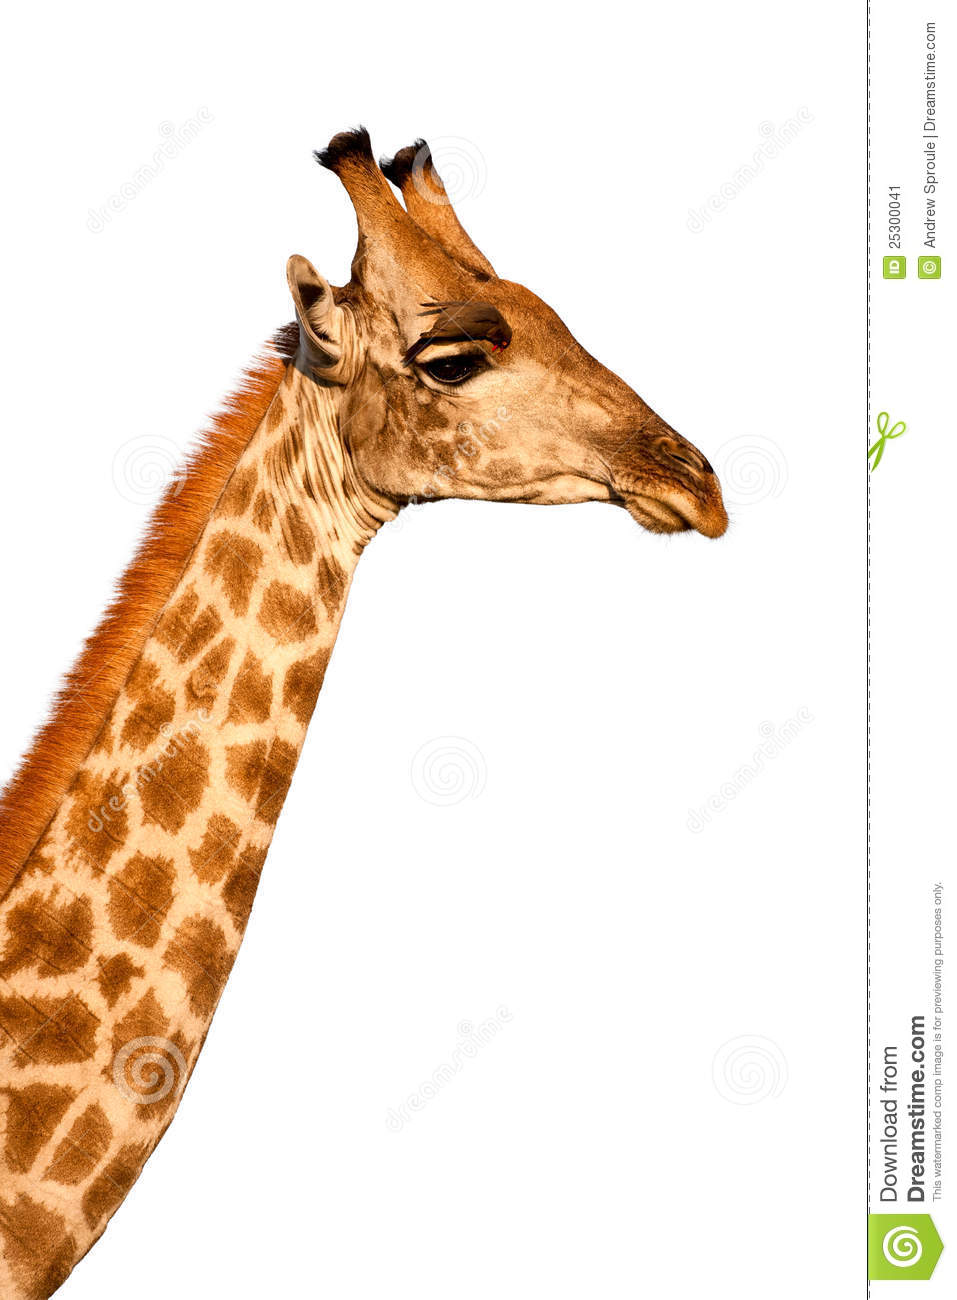 giraffe head white background - photo #26